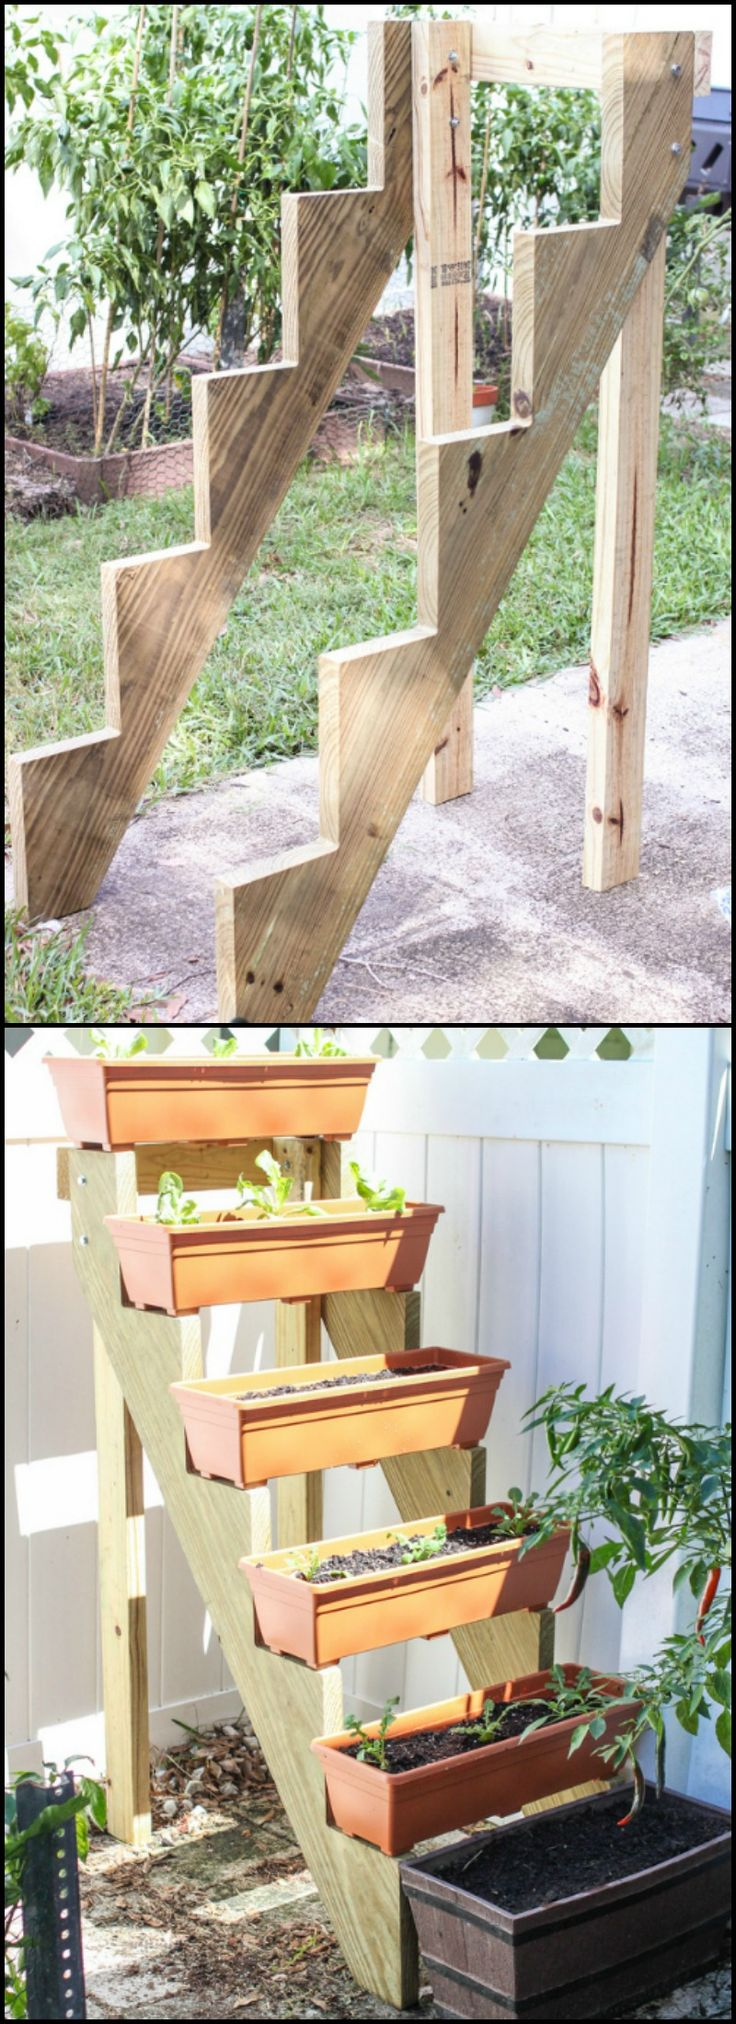 Space-Saving Staircase Vertical Planter  http://diyprojects.ideas2live4.com/2015/12/08/space-saving-staircase-vertical-planter/  With this vertical garden you can grow more plants and herbs using less space. This staircase planter also makes work easier since you don't have to kneel and reach down to the ground to tend plants. And as a bonus, it prevents garden critters from getting to your produce!  Is this going to be your next garden project? :)